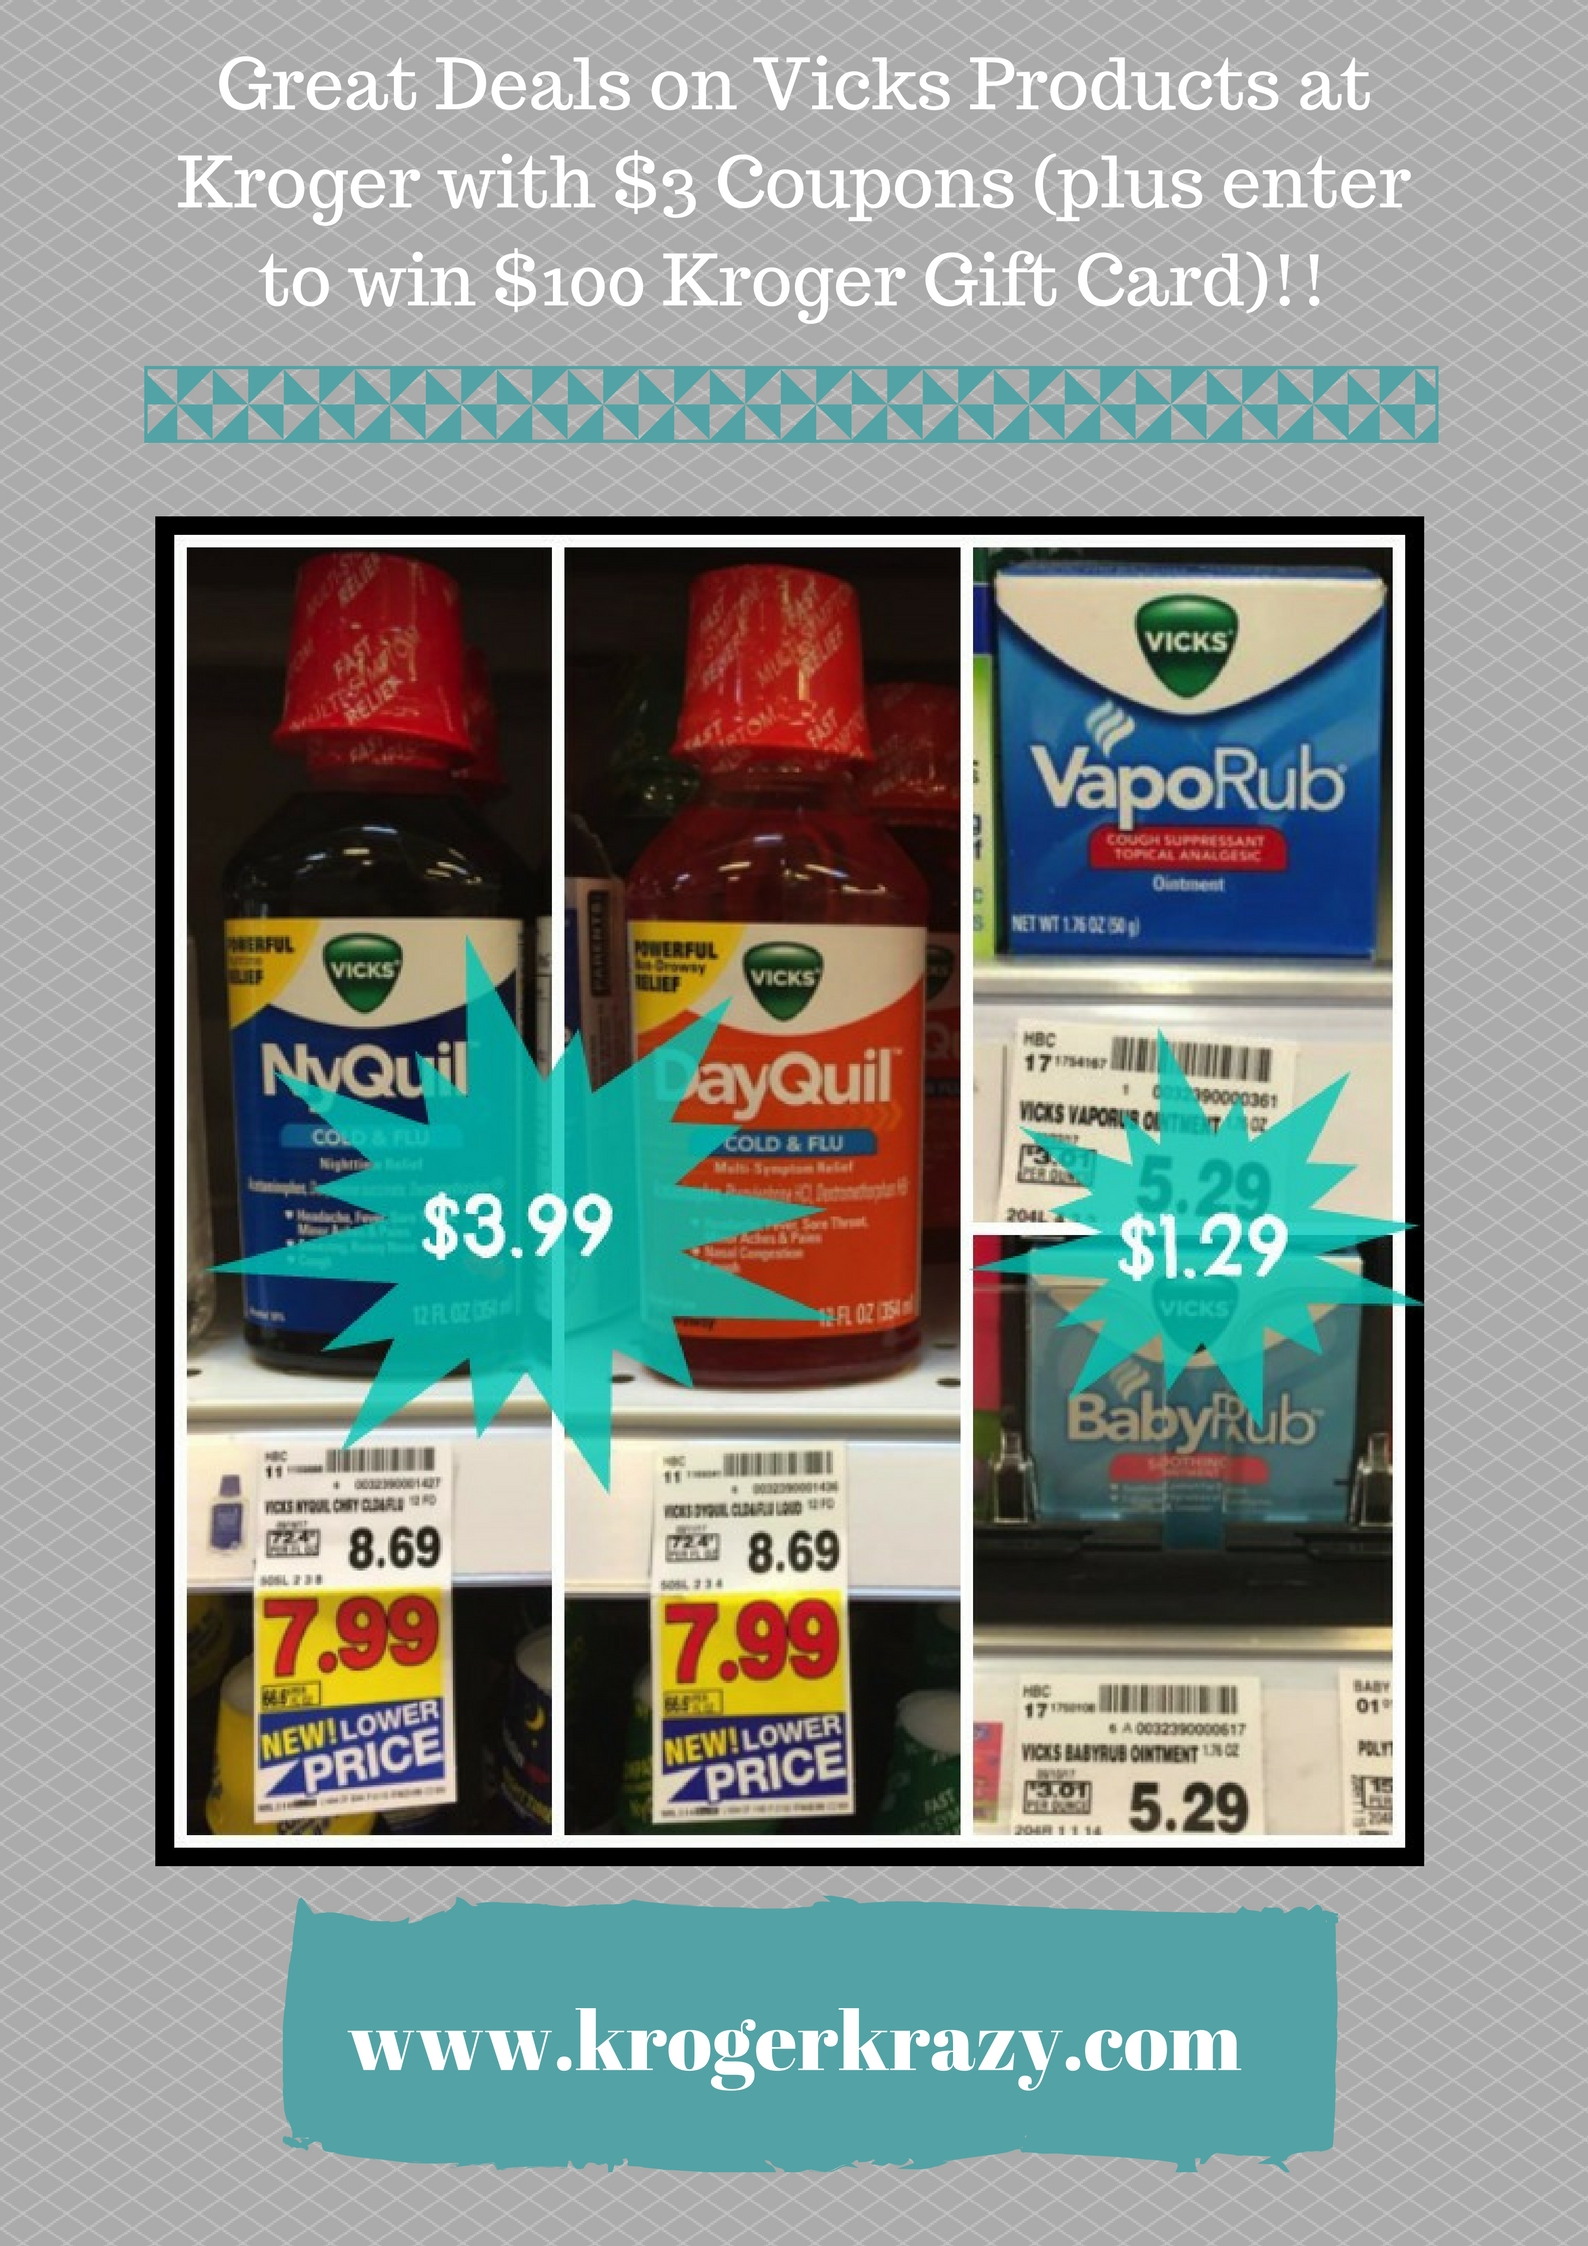 Great Deals on Vicks Products at Kroger with $3 Coupons (plus enter to win $100 Kroger Gift Card)!!